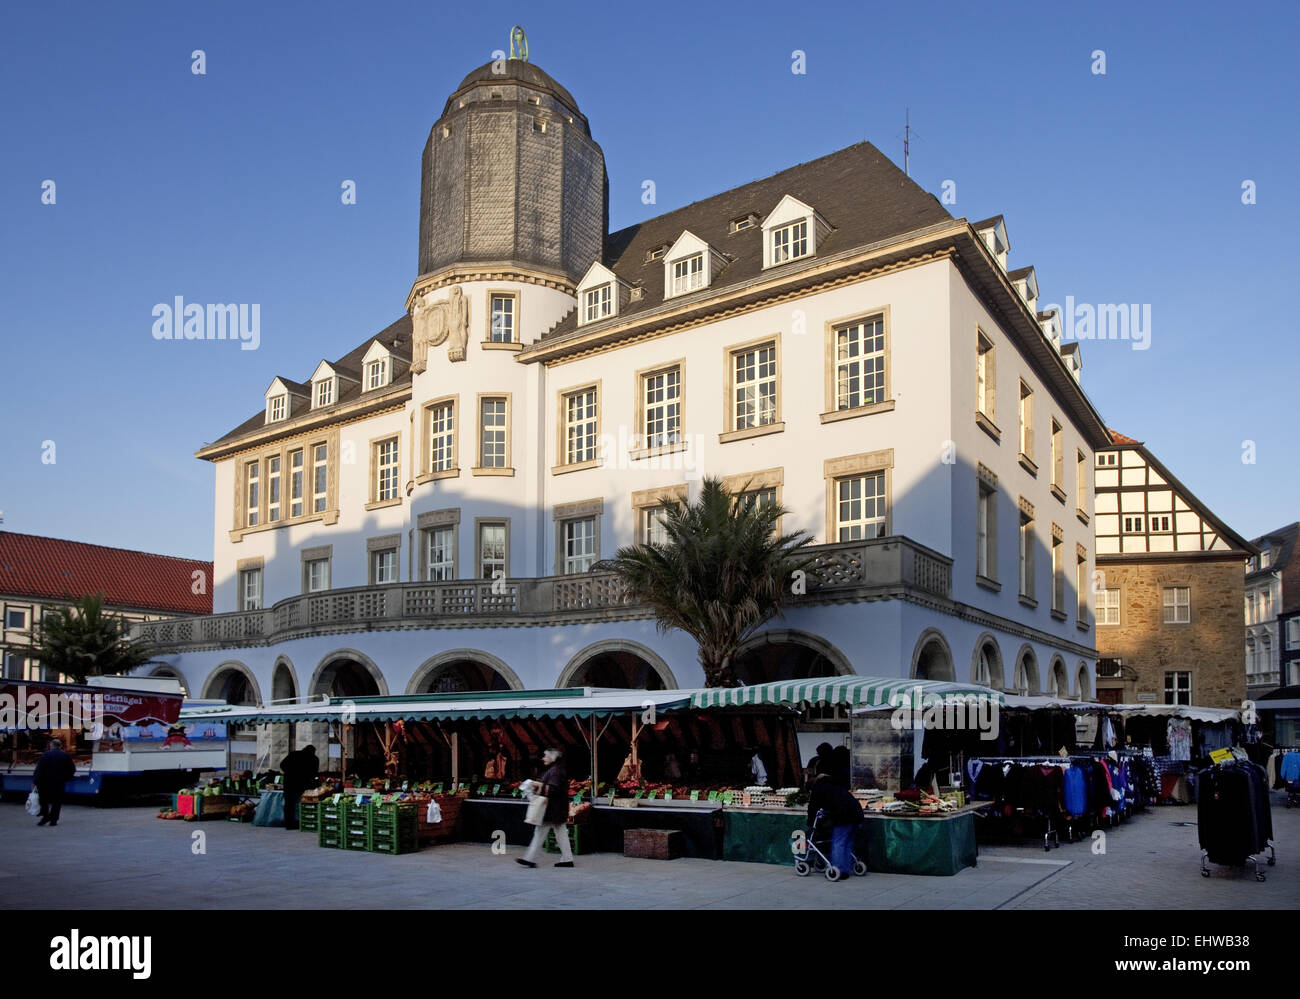 The old town hall in Menden, Germany. - Stock Image